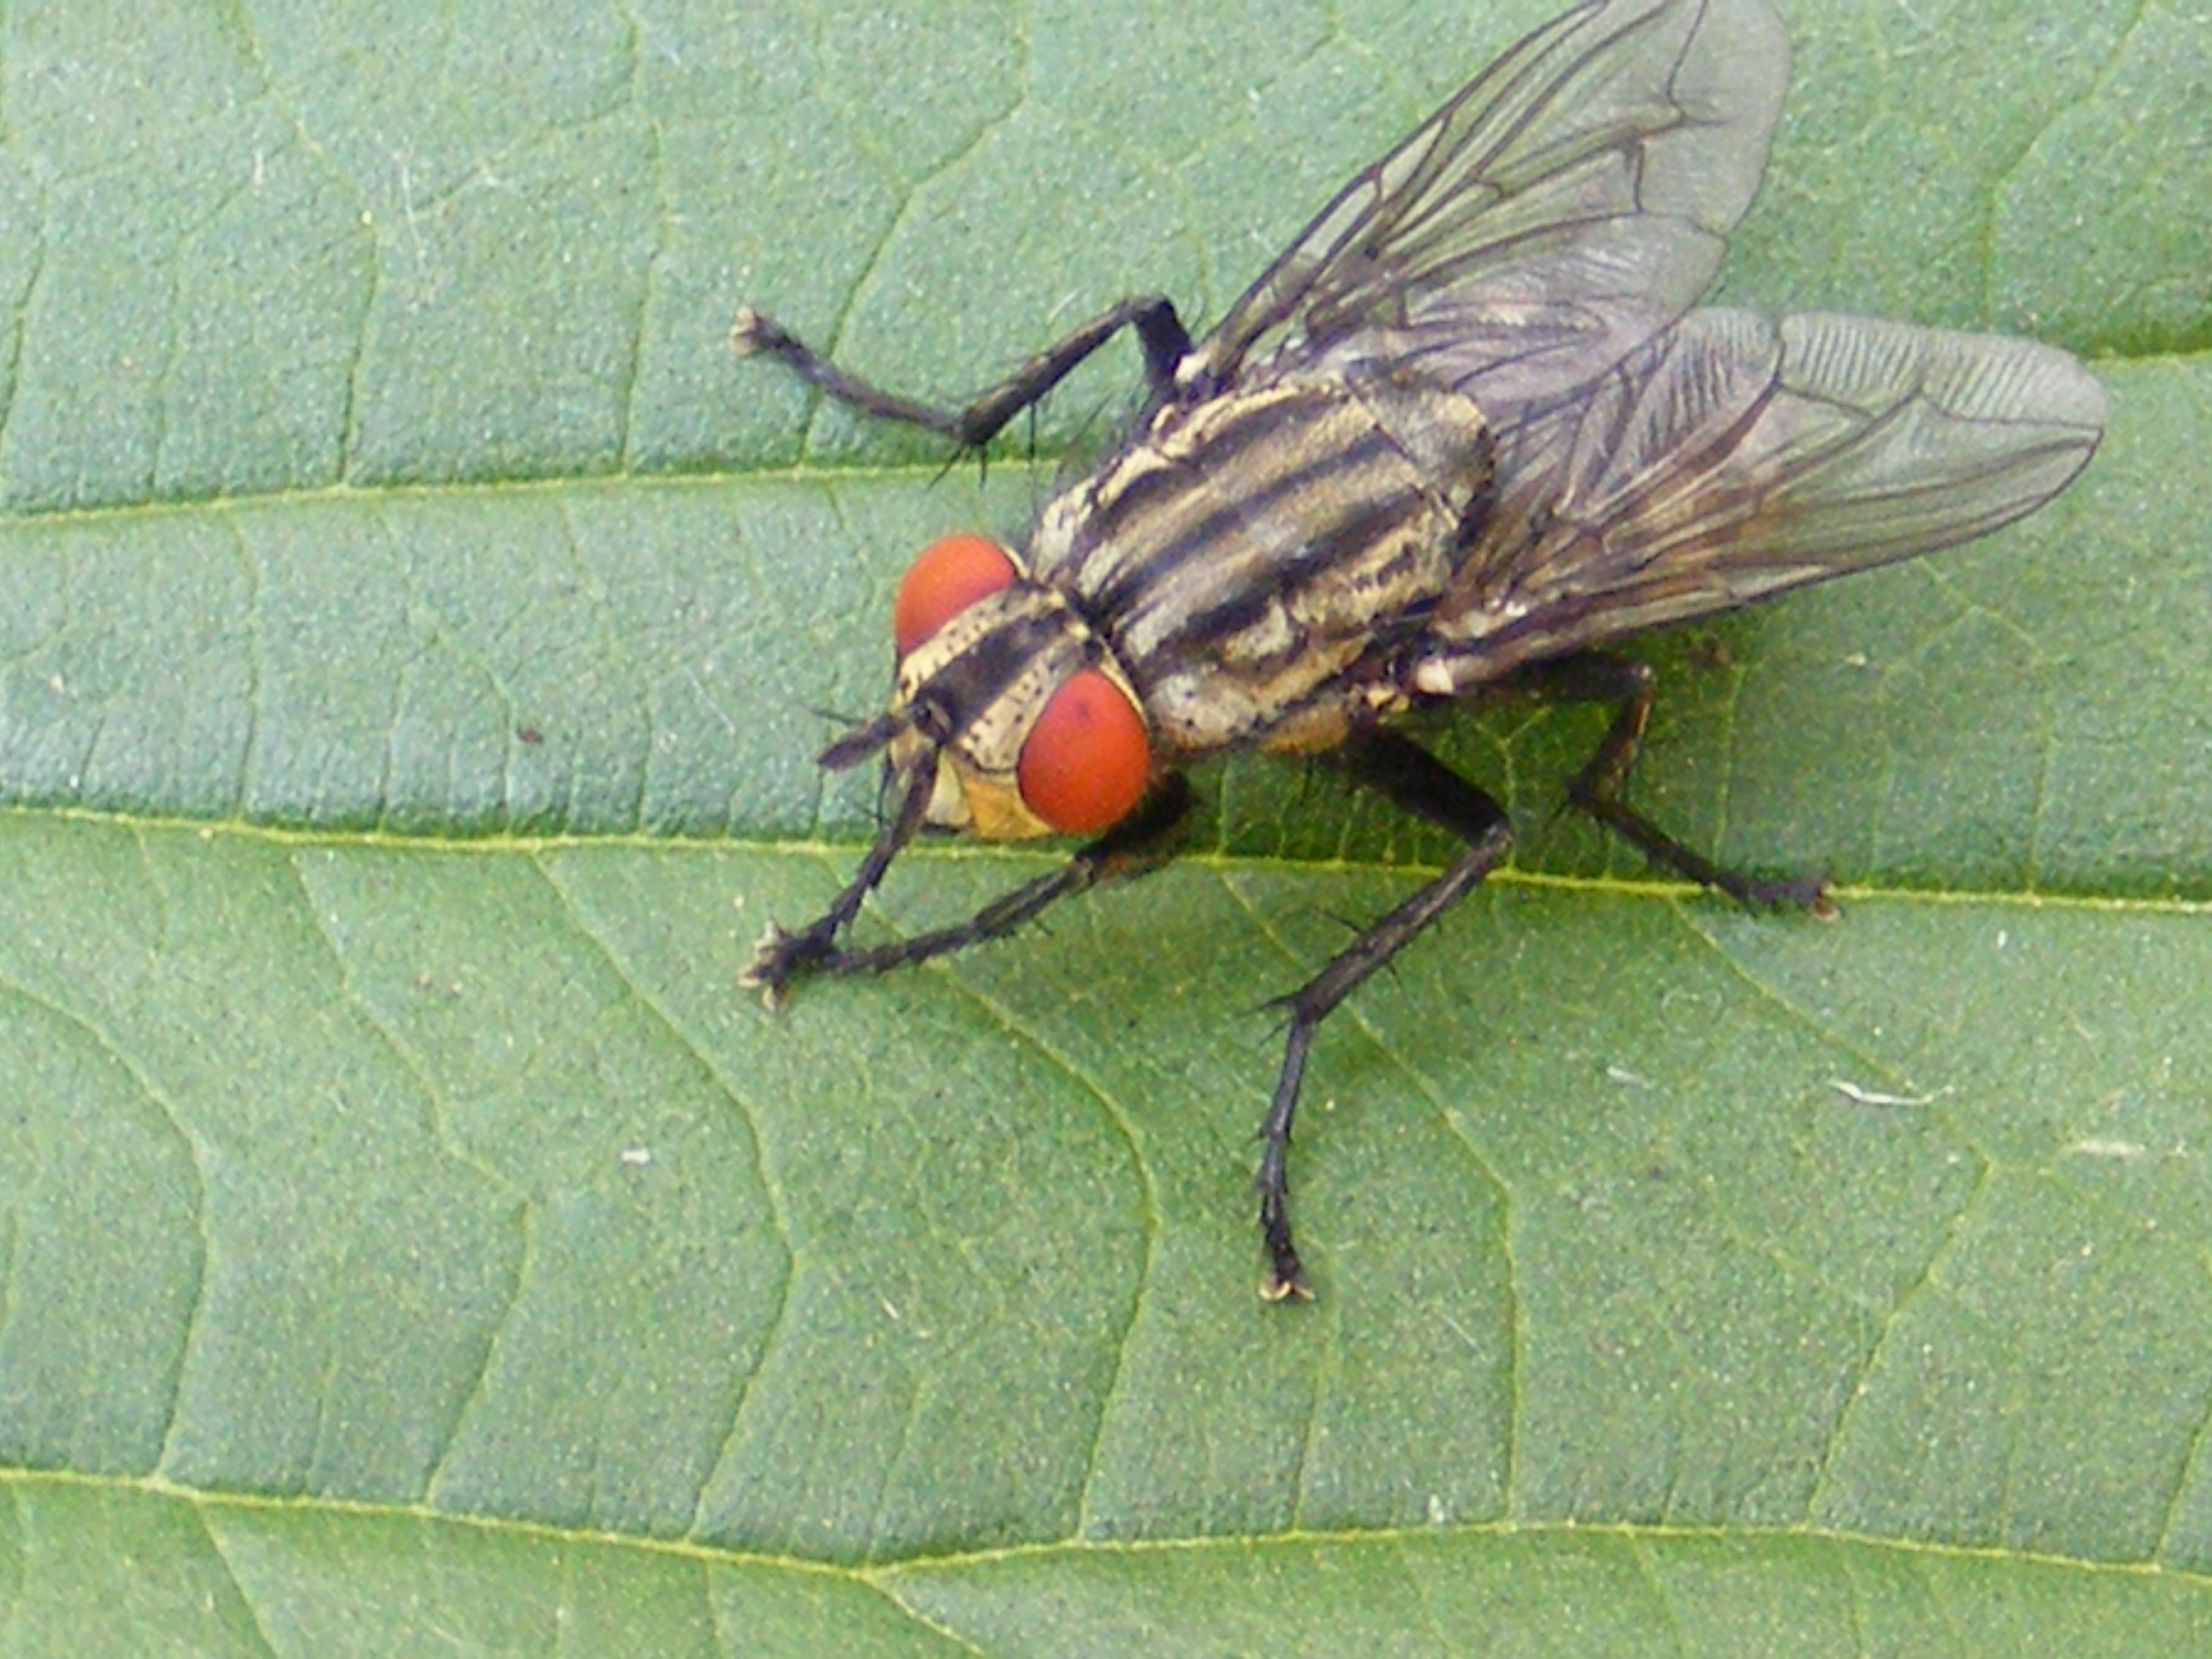 Flying Insects of Michigan http://thelifeofyourtime.wordpress.com/2012/07/06/random-insect-flesh-fly/